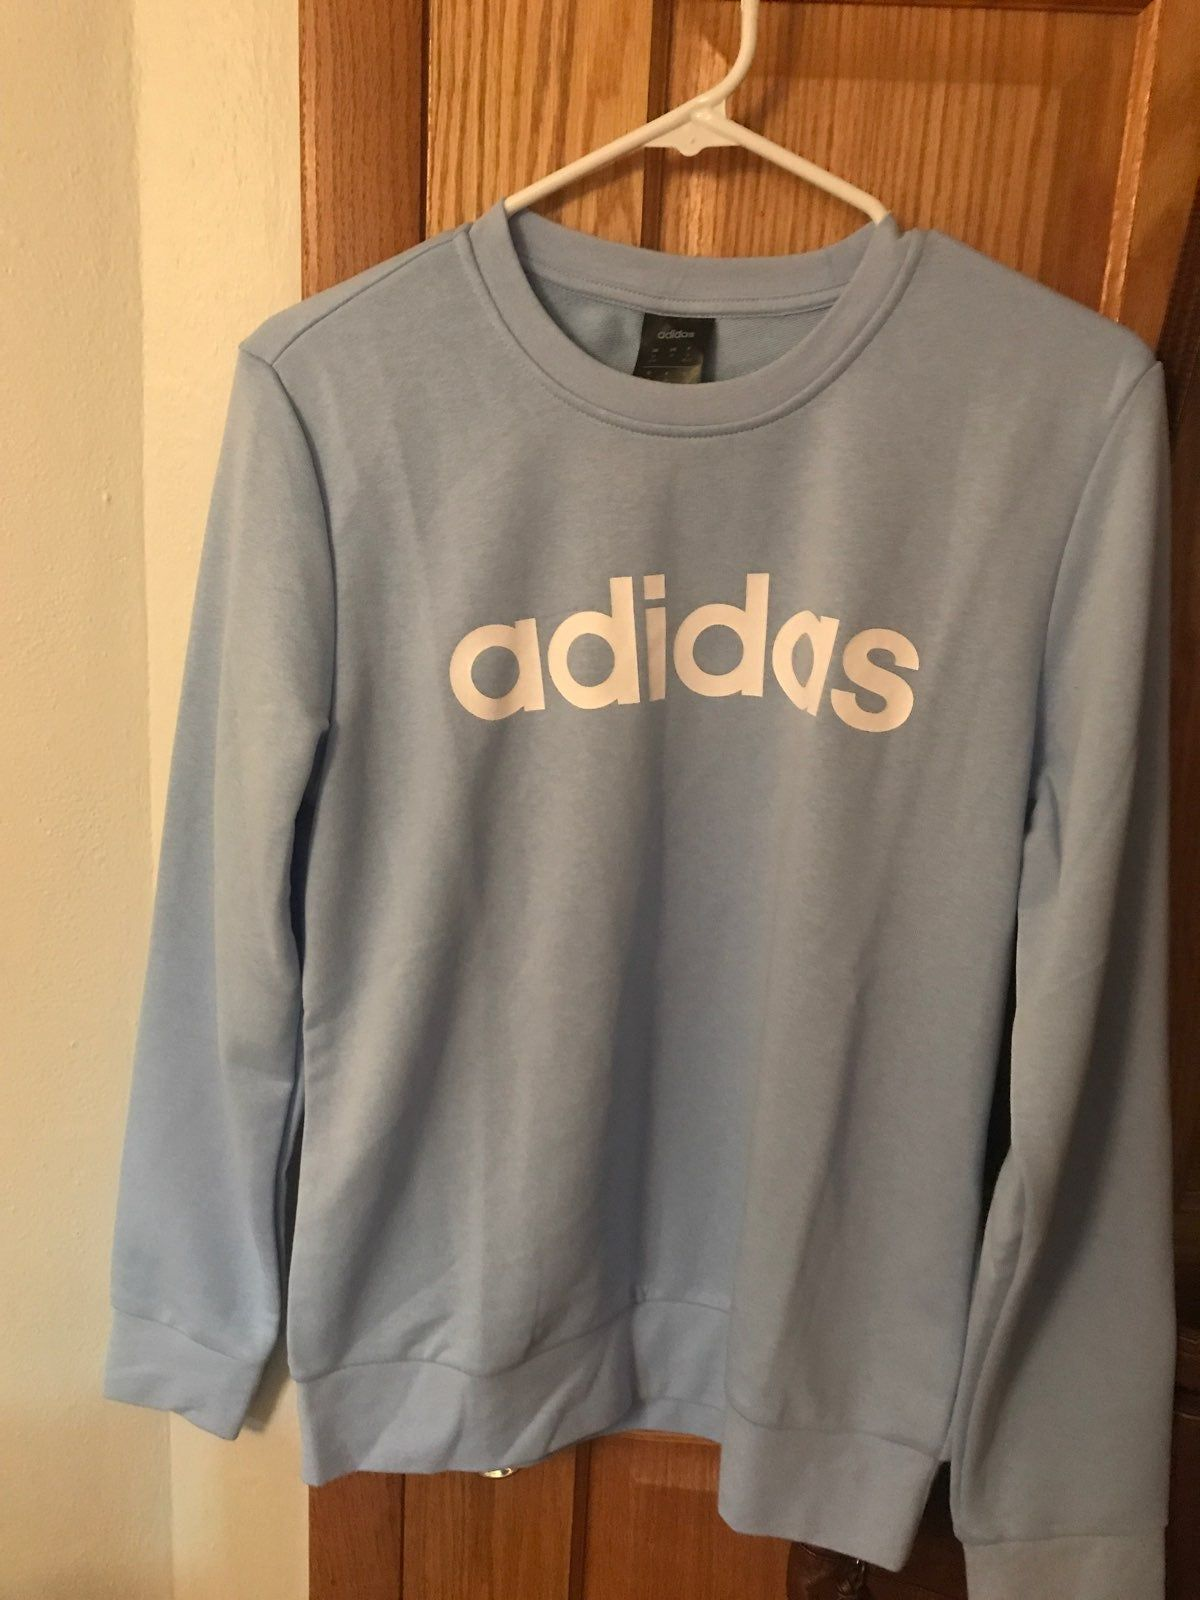 Light Blue Adidas Sweater Size Medium In Woman S Brand New Never Worn Let Me Know If You Have Any Questions Adidas Sweater Athletic Shirts Blue Adidas [ 1600 x 1200 Pixel ]